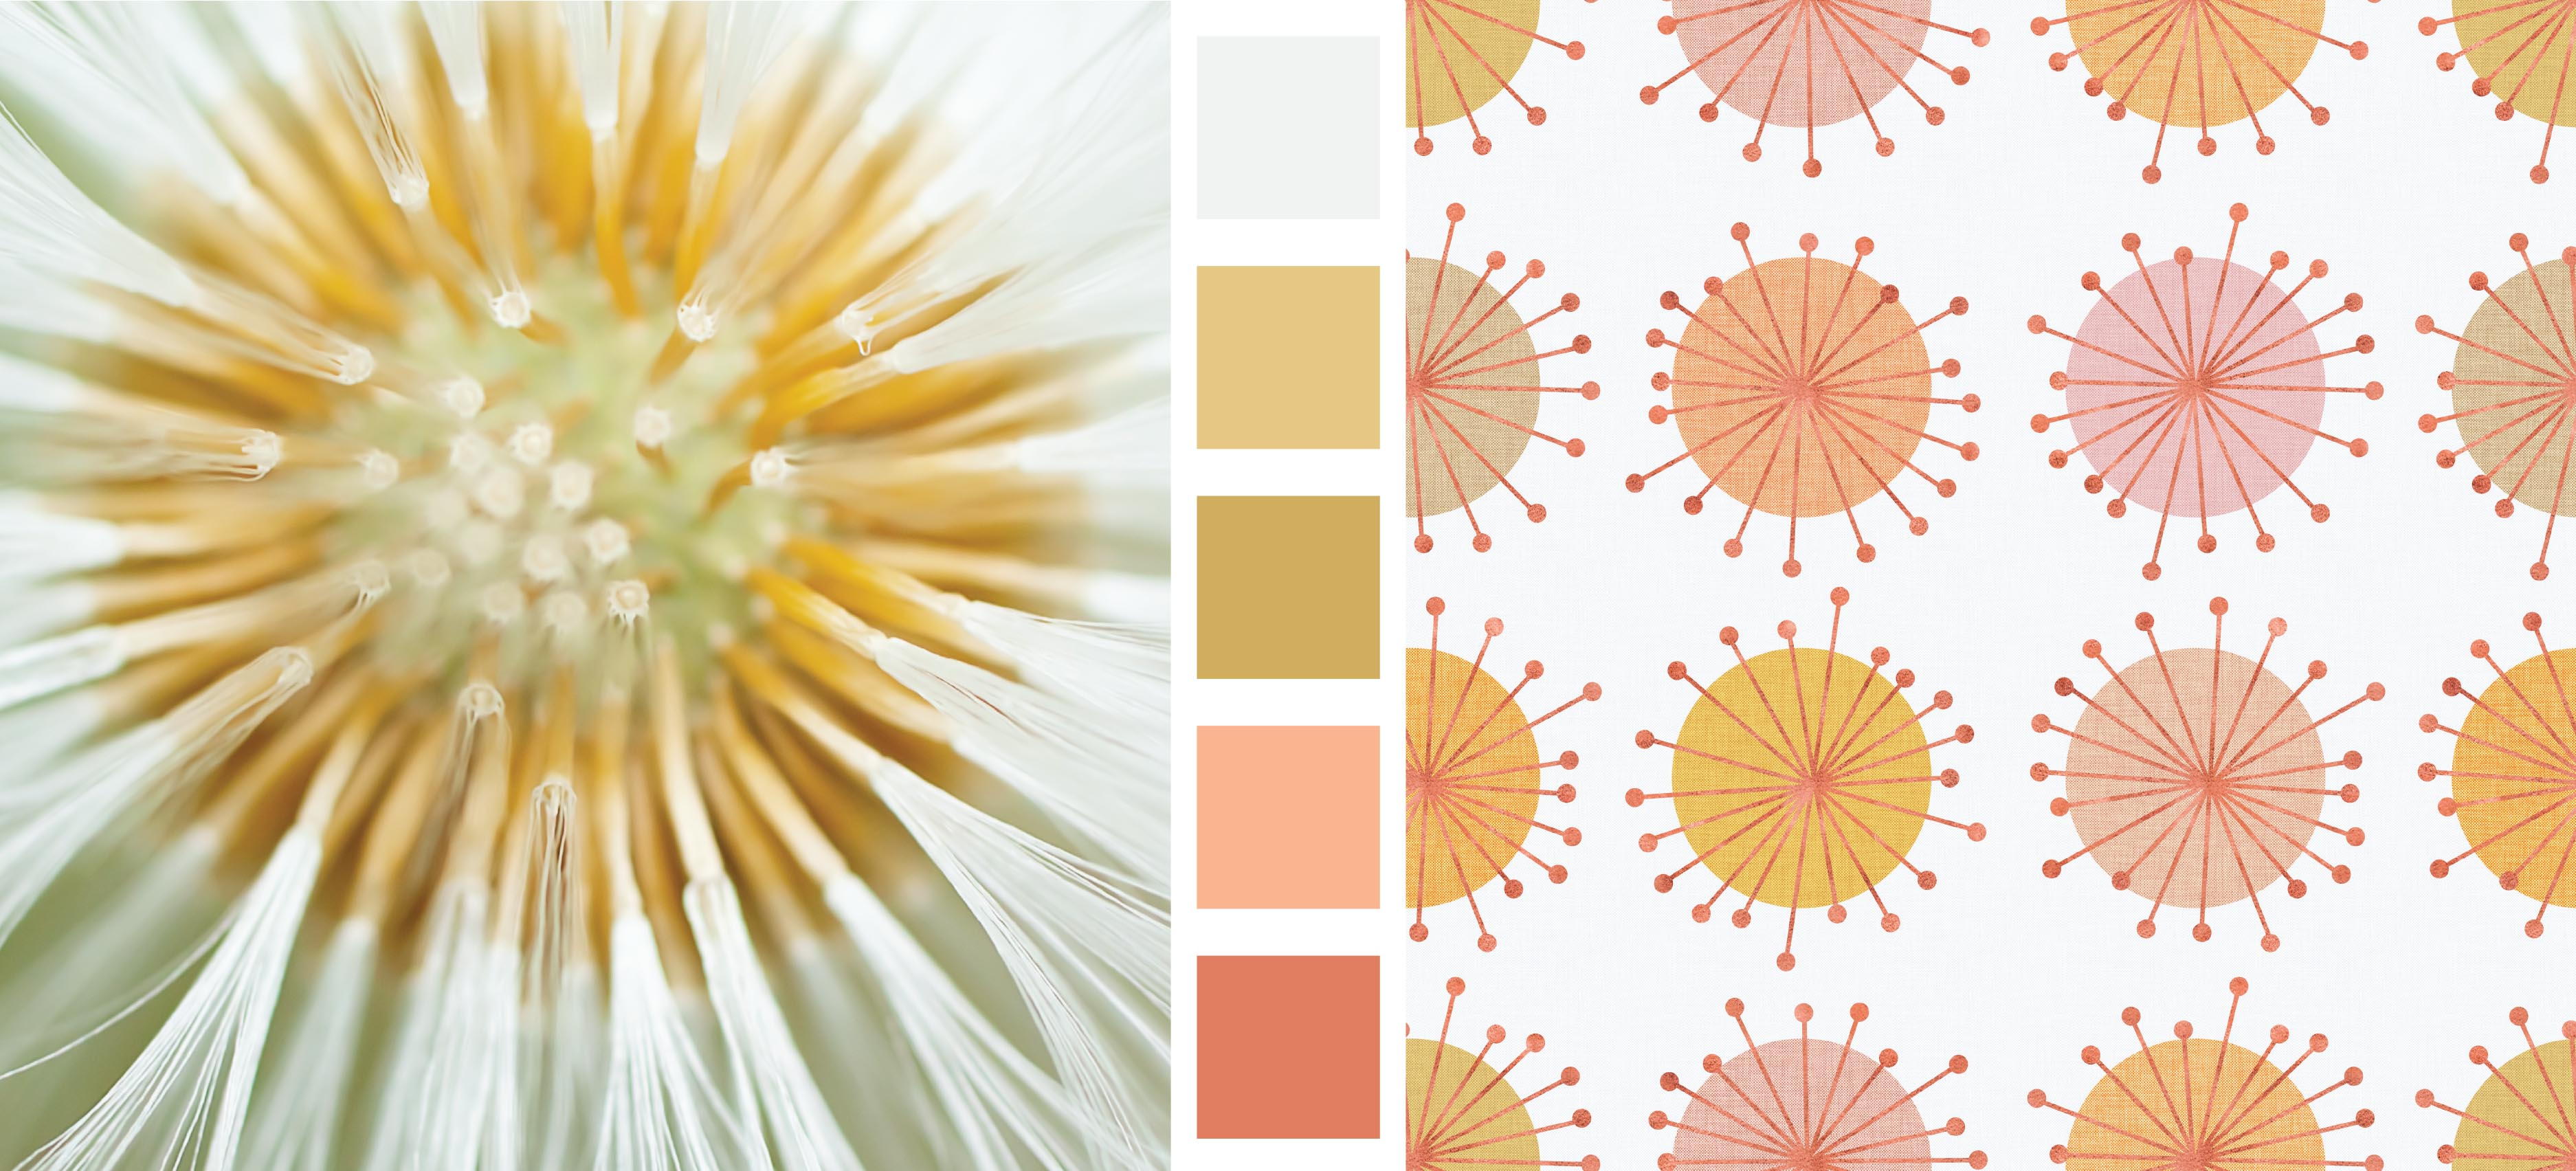 Earth Day Design and Color Inspiration Stylized Daisies